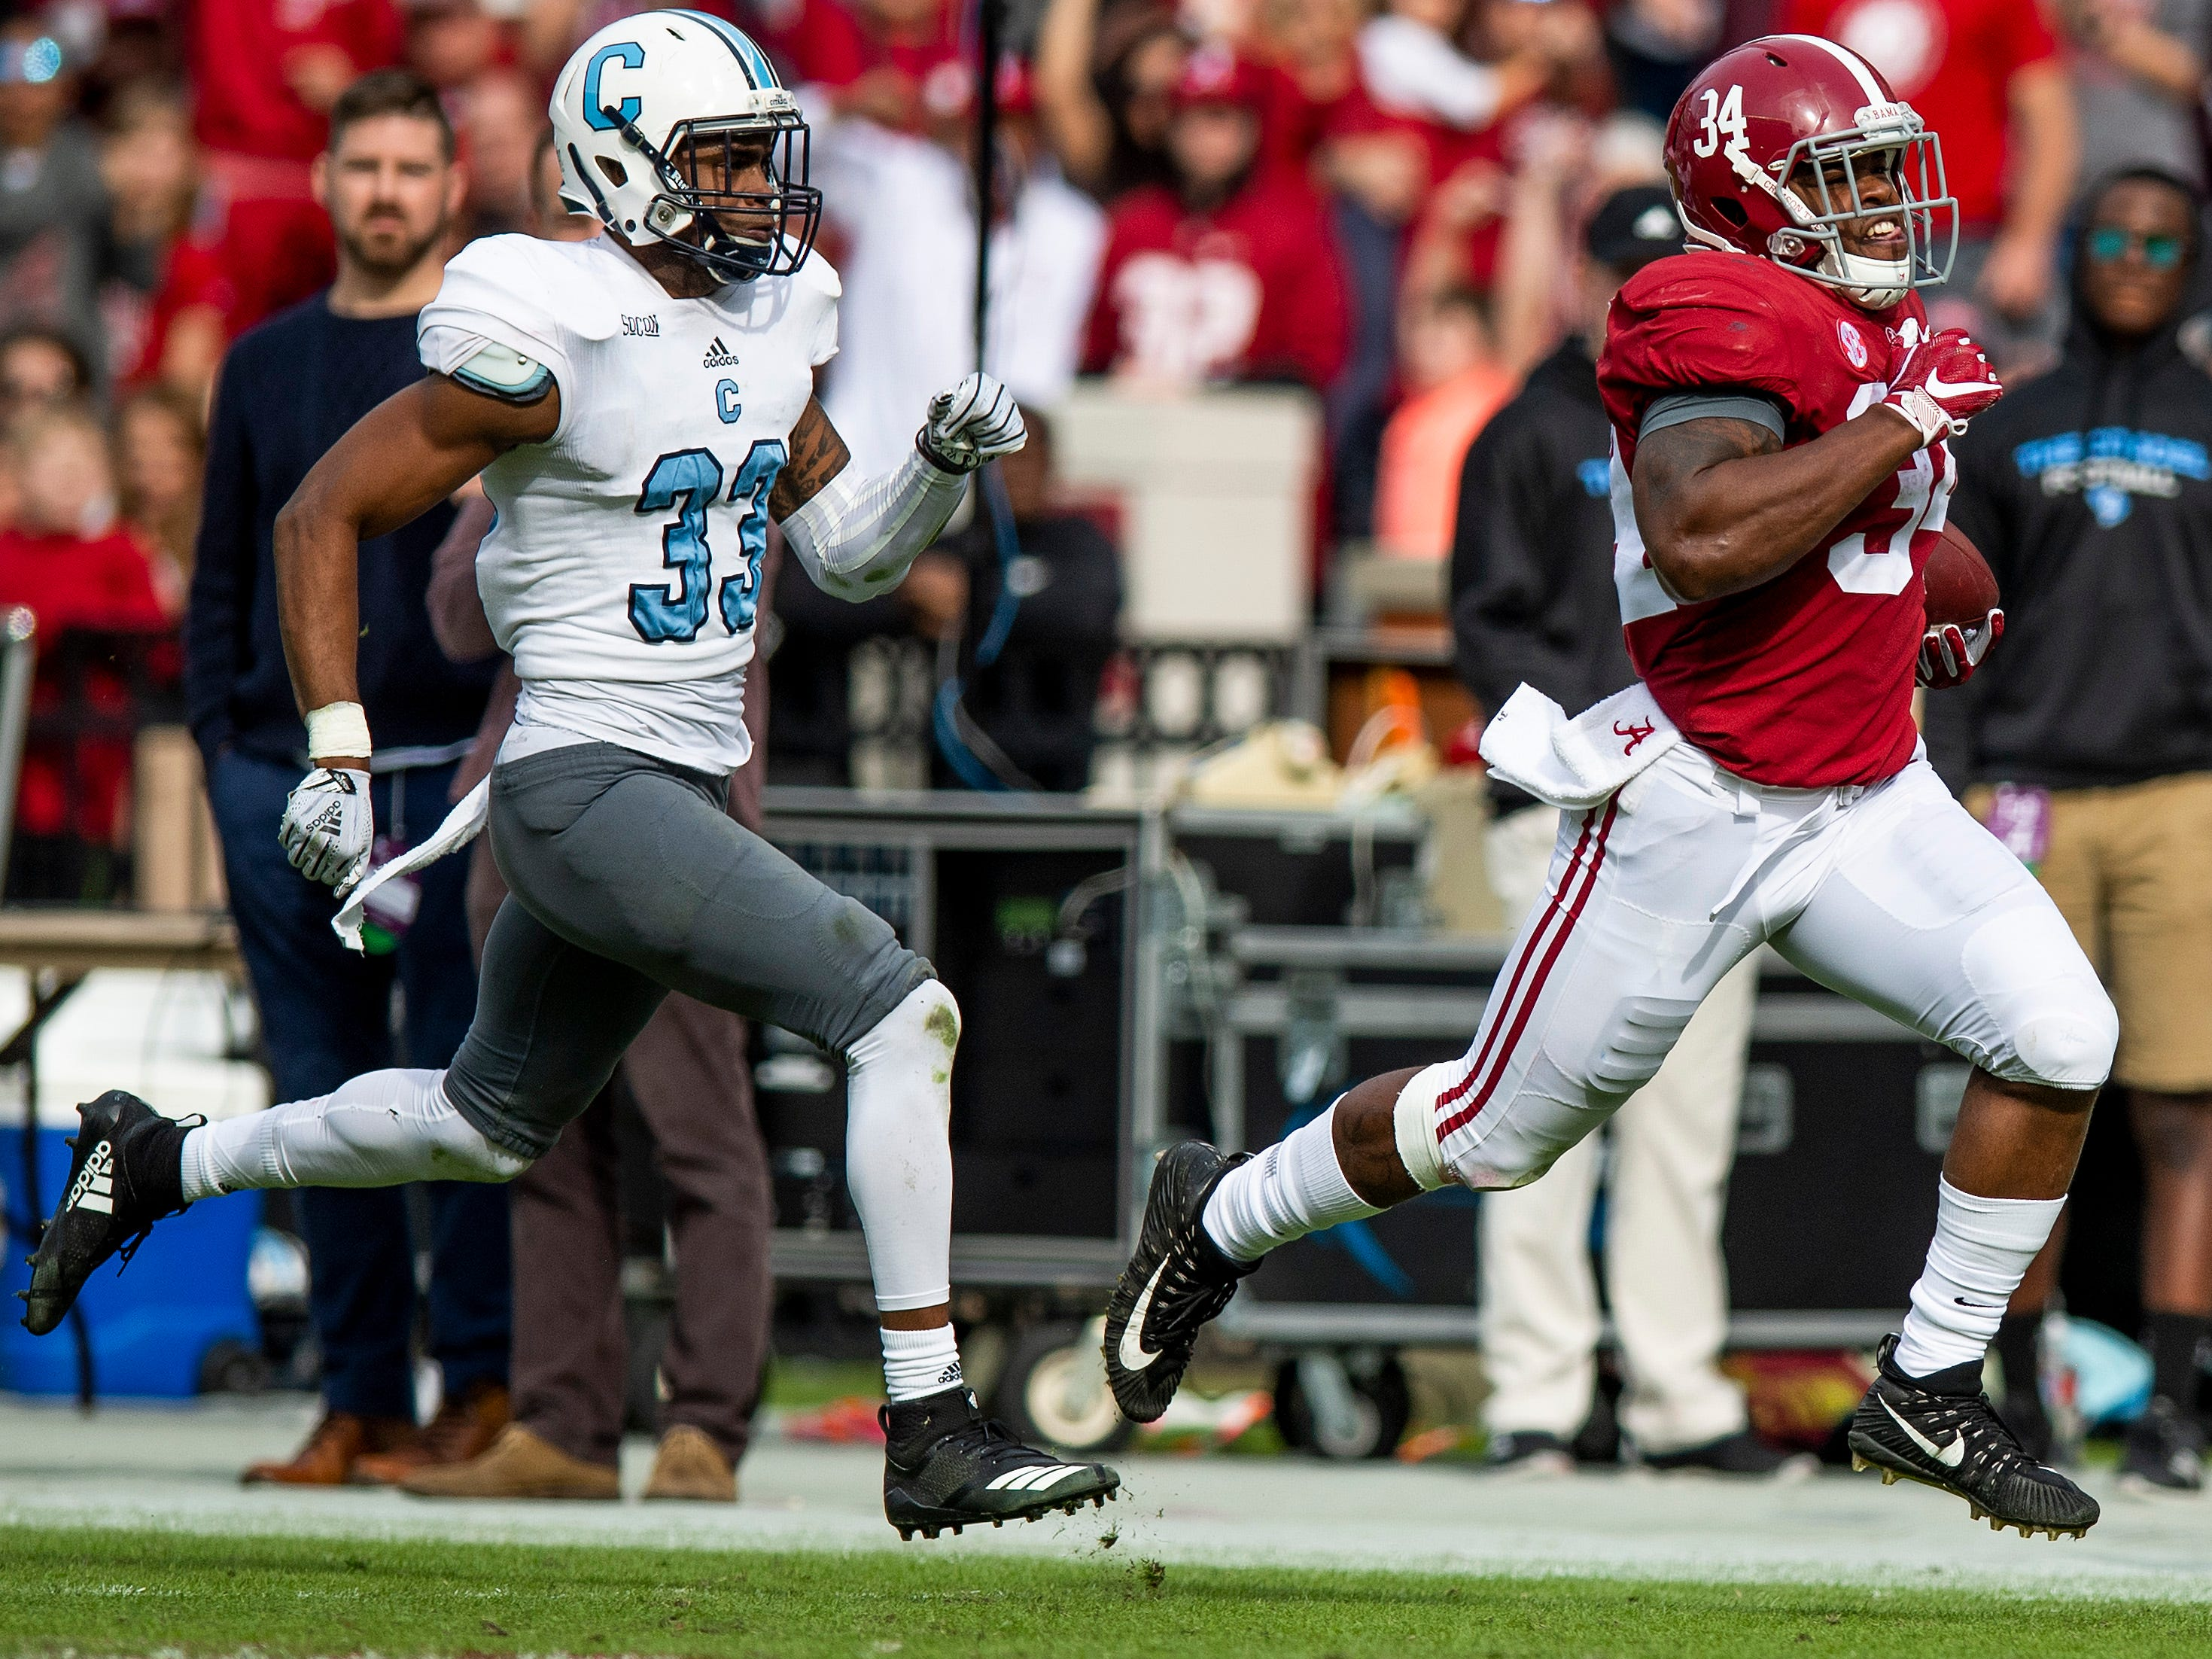 Alabama running back Damien Harris (34) carries the ball against The Citadel in second half action at Bryant-Denny Stadium in Tuscaloosa, Ala., on Saturday November 17, 2018.